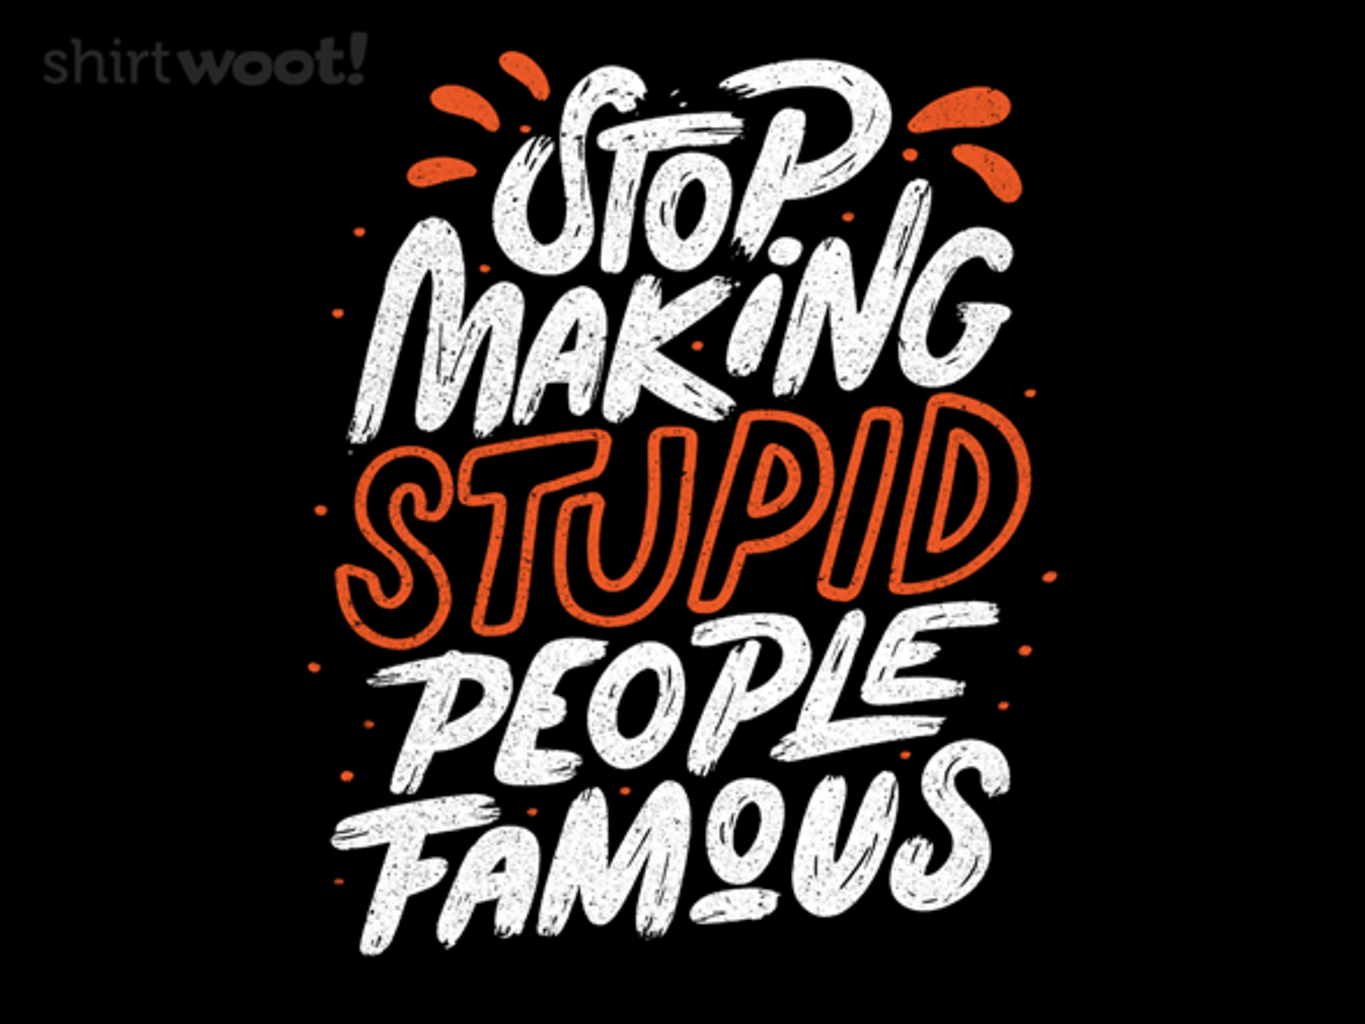 Woot!: Stop Making Stupid People Famous